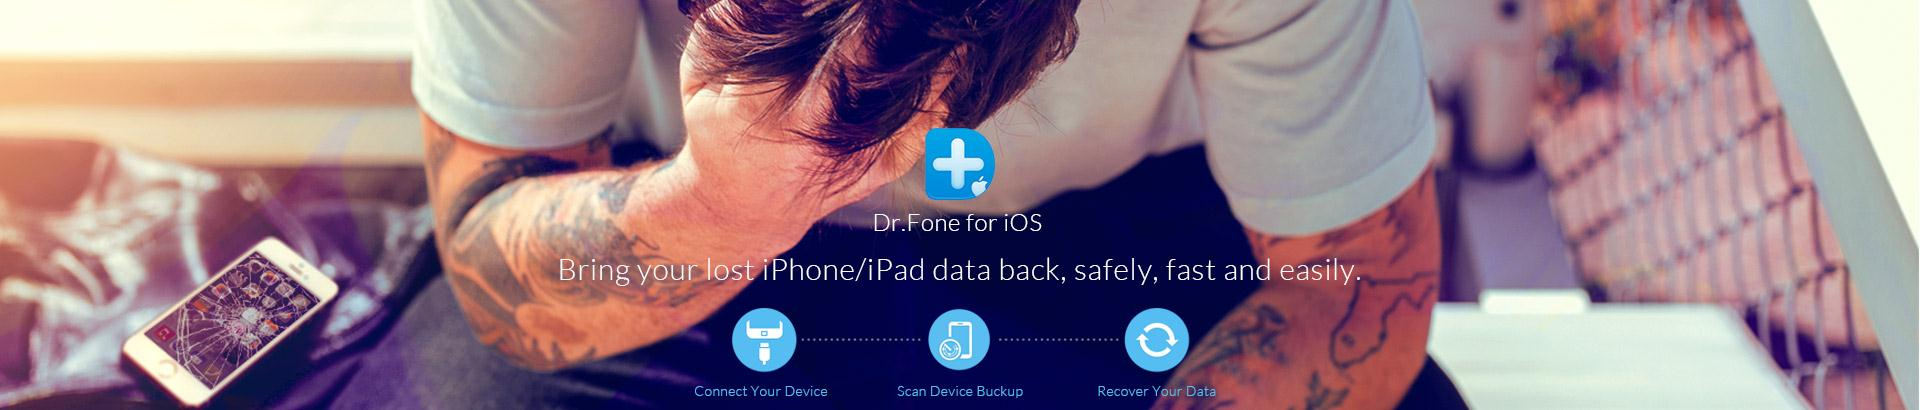 Dr.Fone for iOS